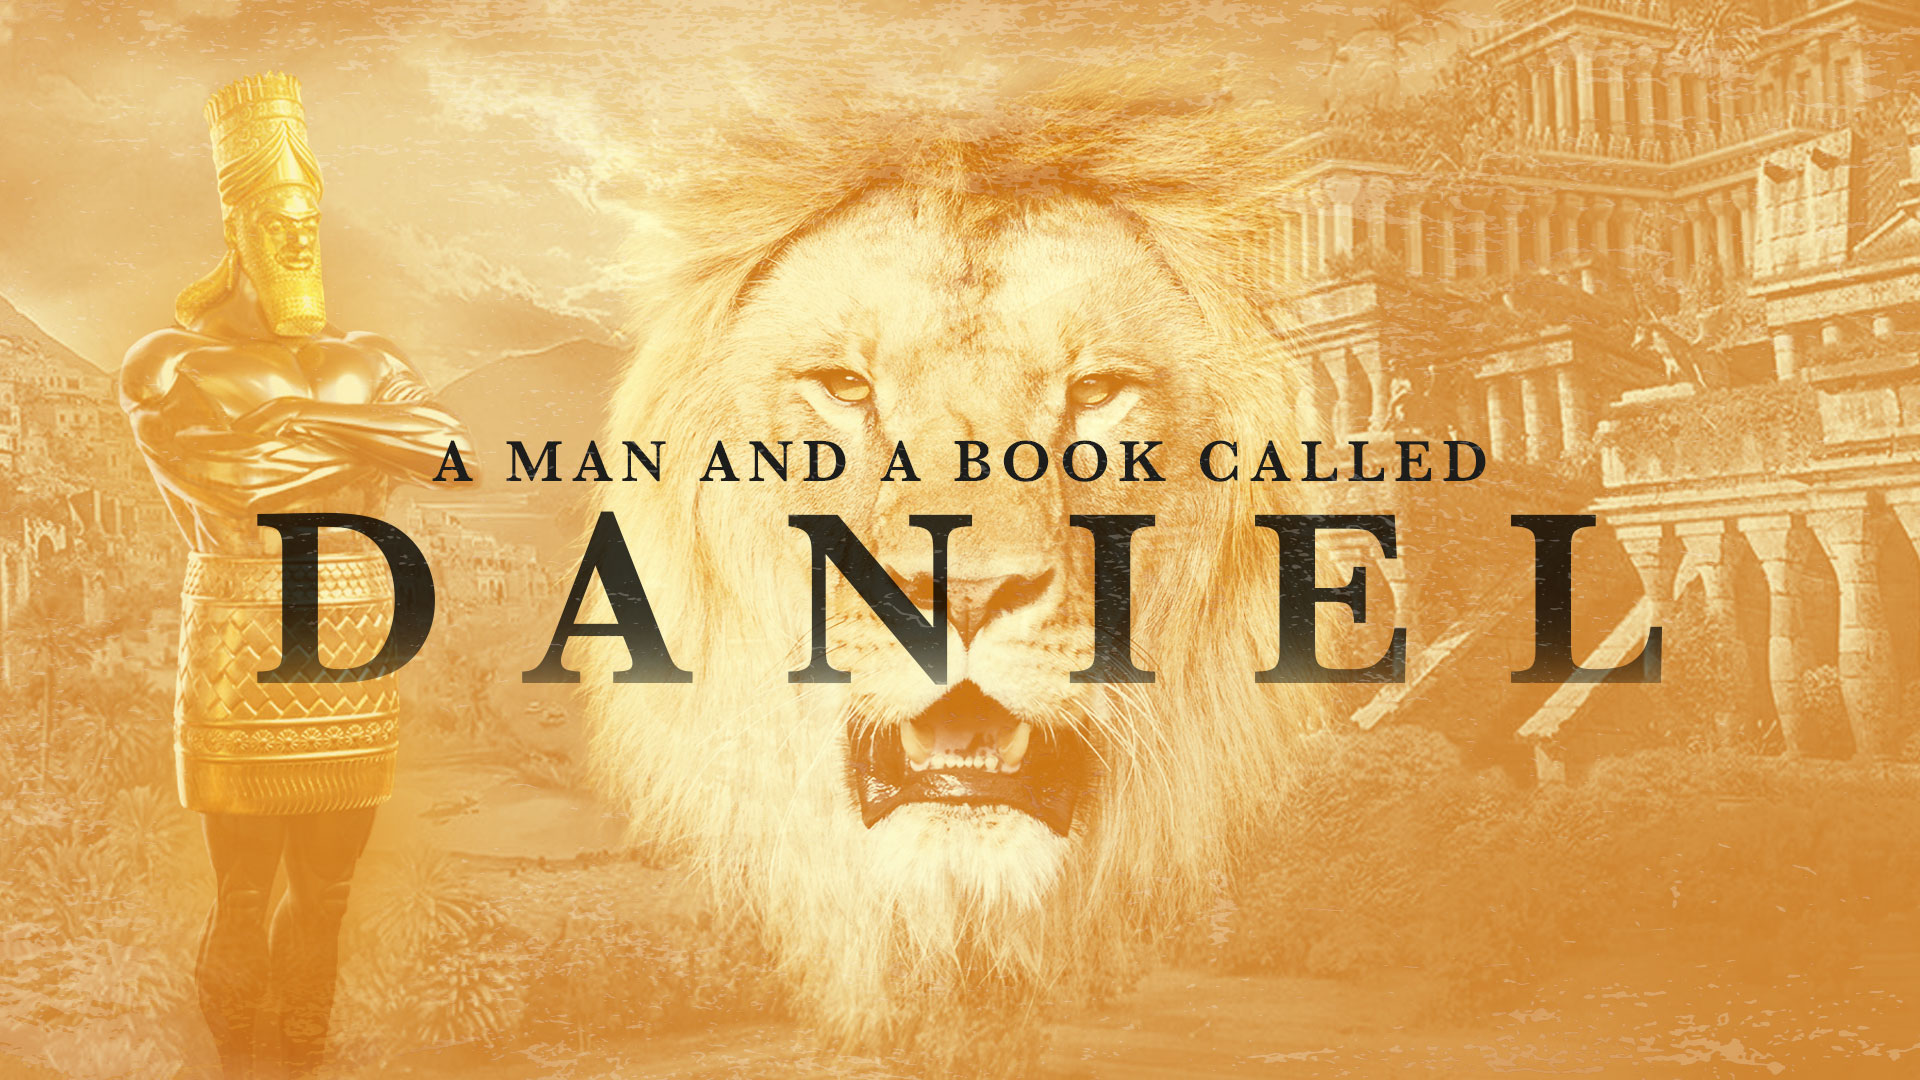 A man and a book called Daniel (Pt 1) Two kings, two cities and four teenagers